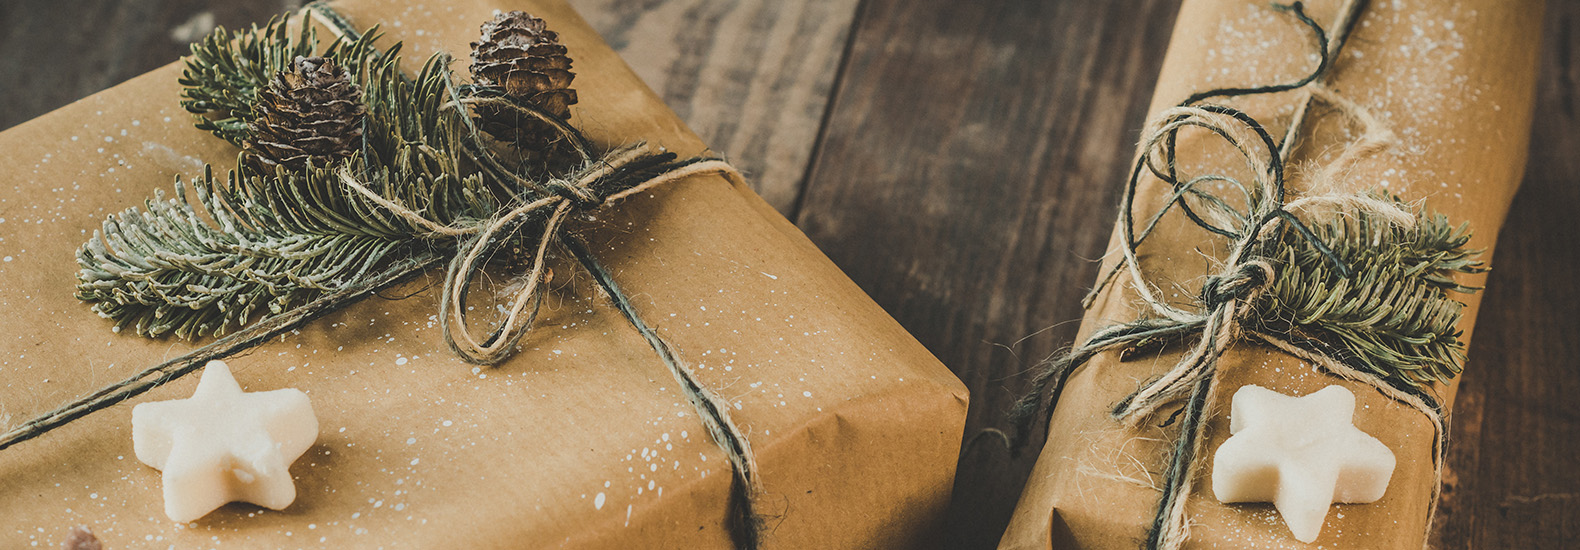 Sustainable holiday gift ideas for siblings